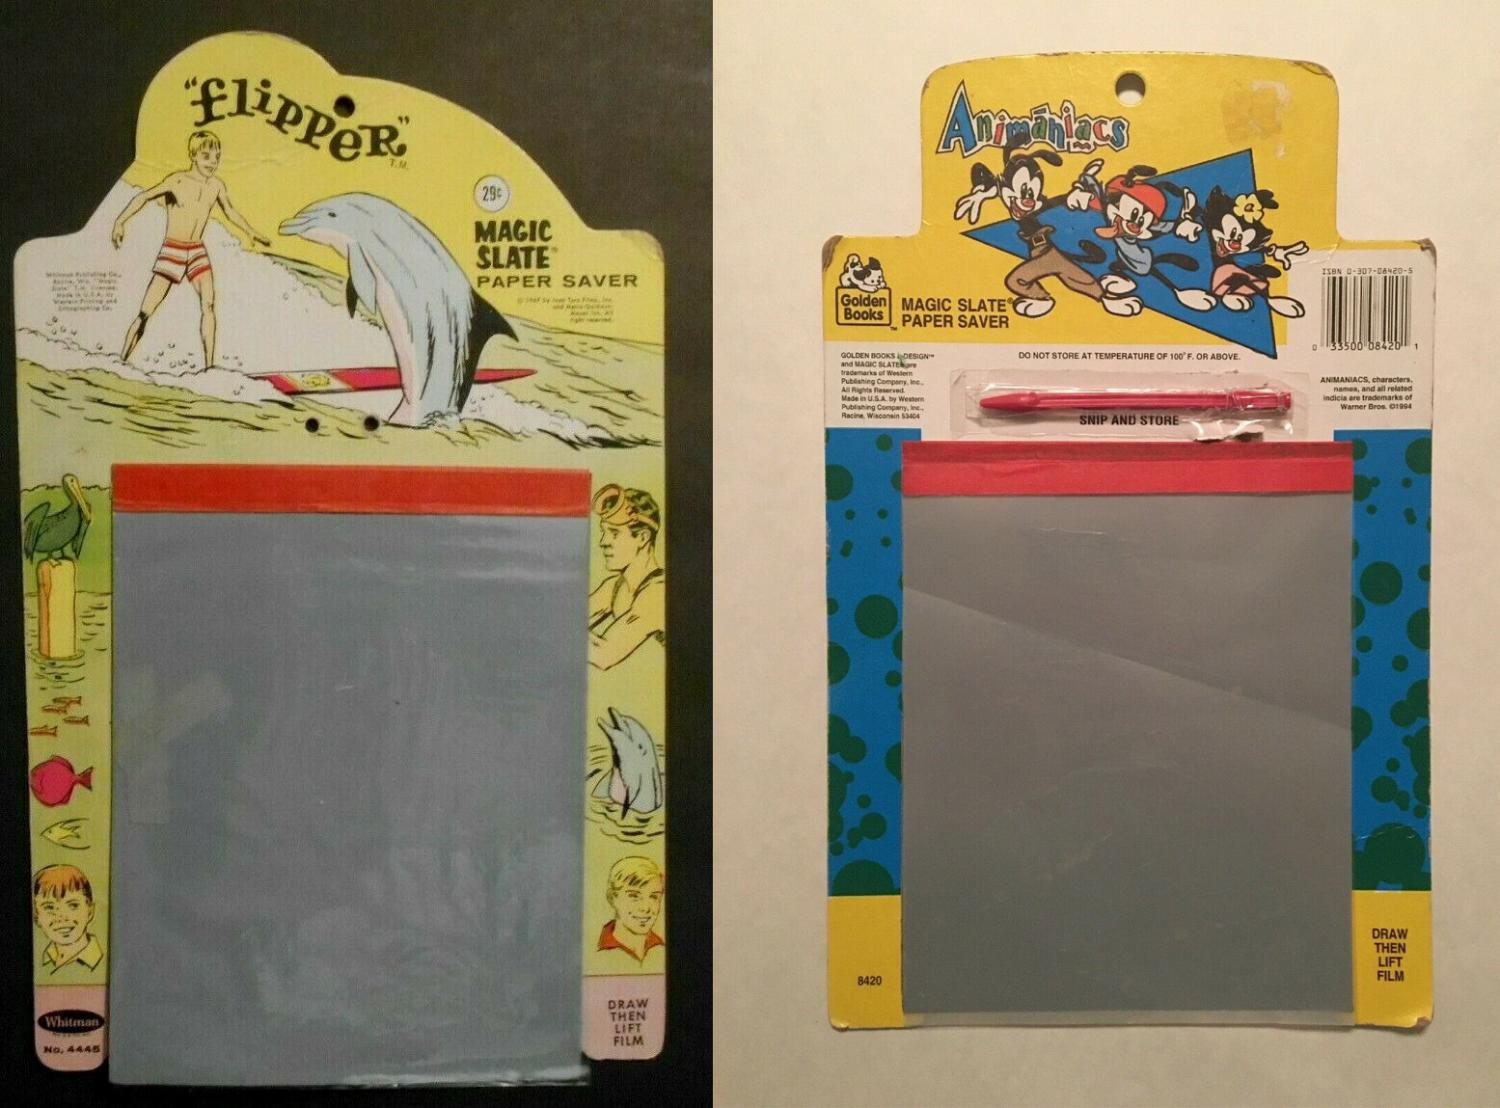 Nostalgic Magic Slate Paper Savers From The 80's and 90's